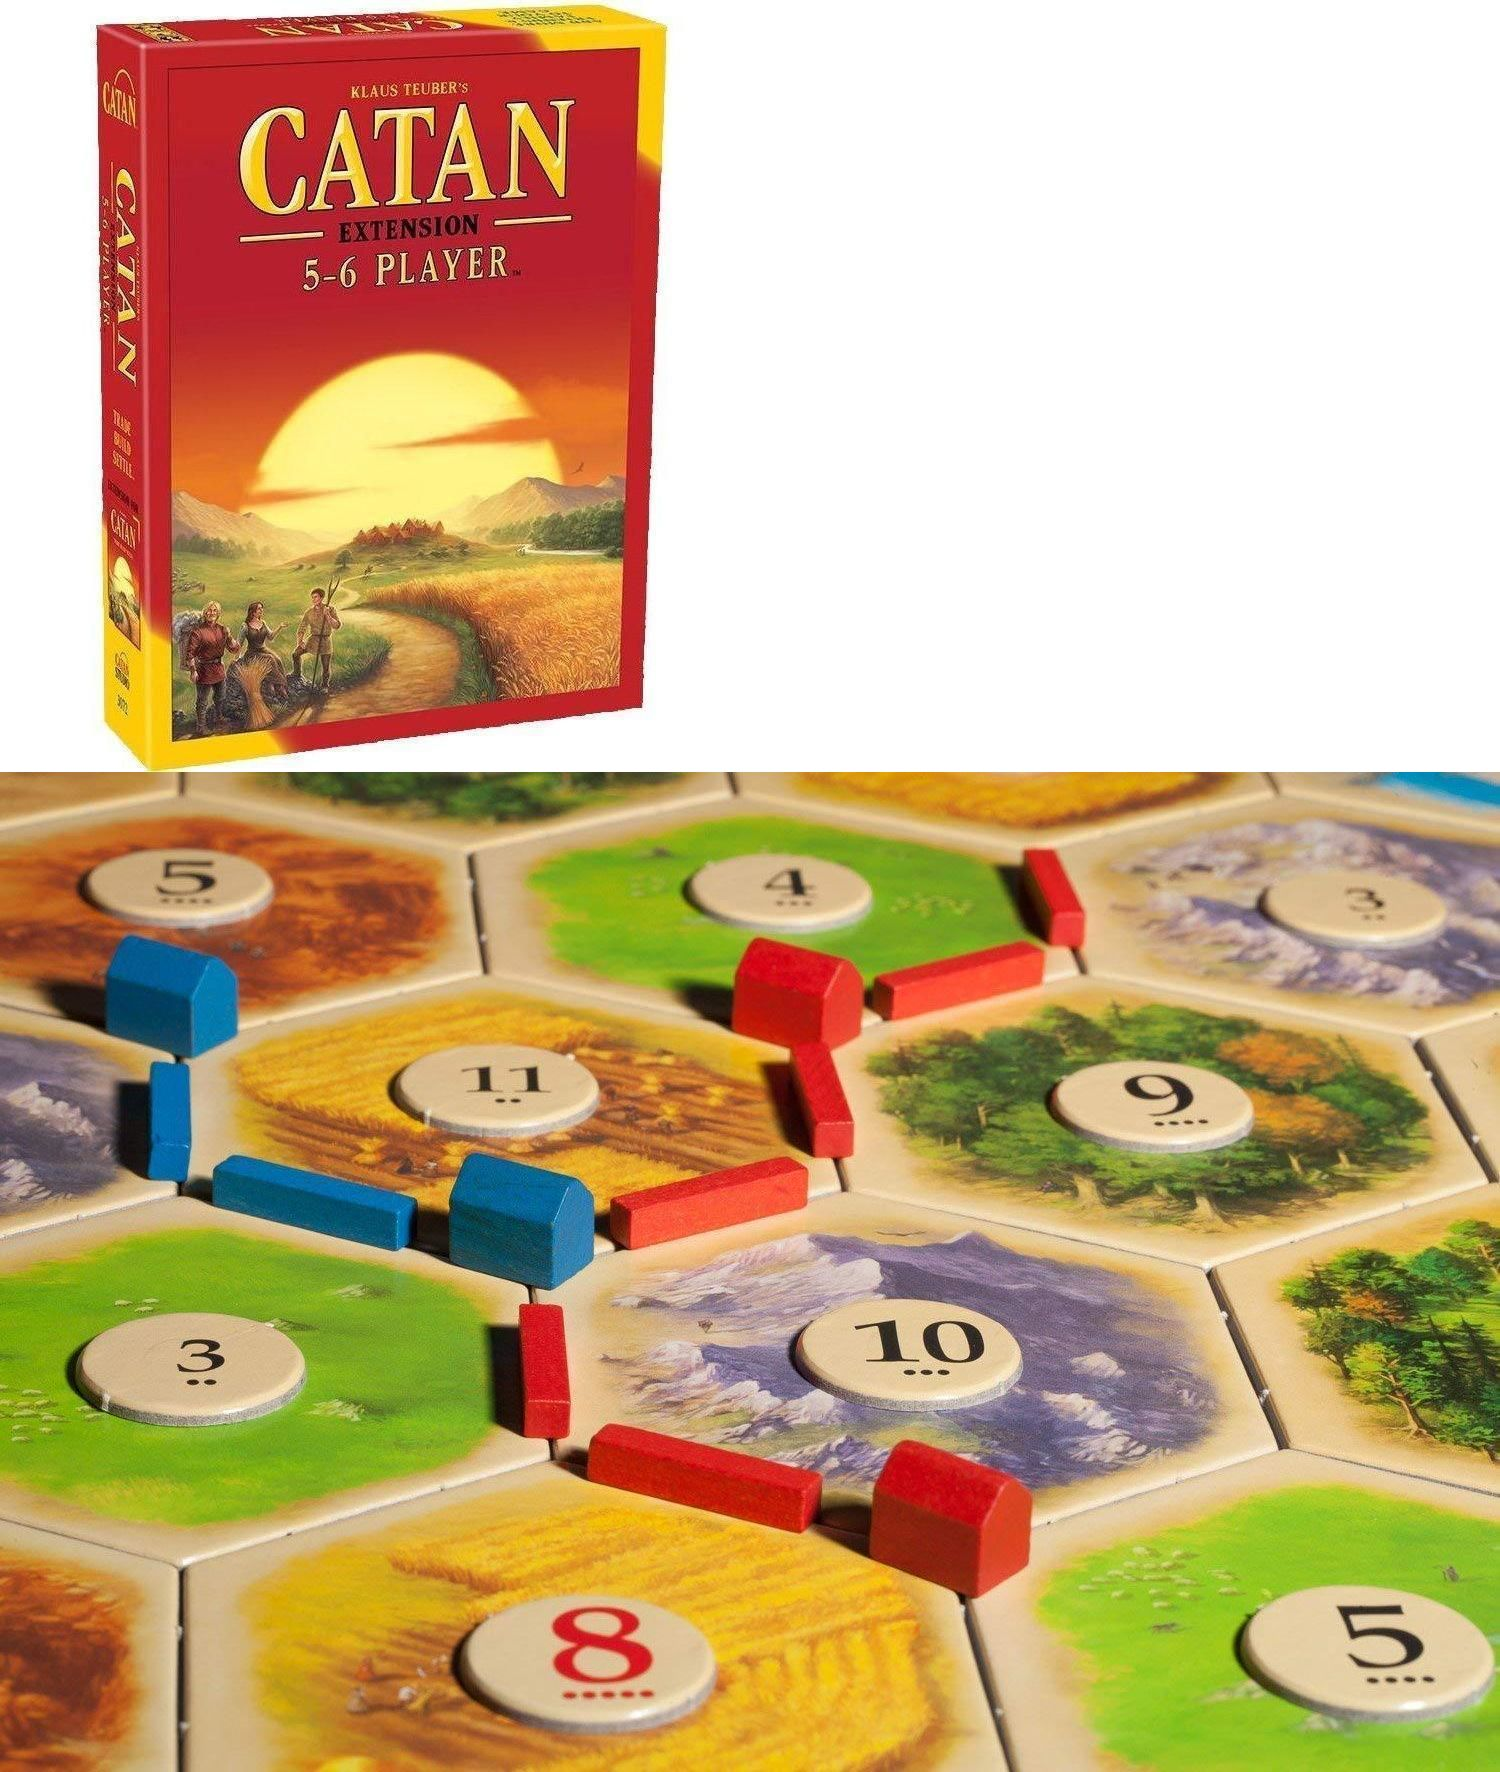 Settlers Of Catan Board Game 5th Edition 5 6 Player Extension Expansion Pack New Catan Board Game Catan Board Catan